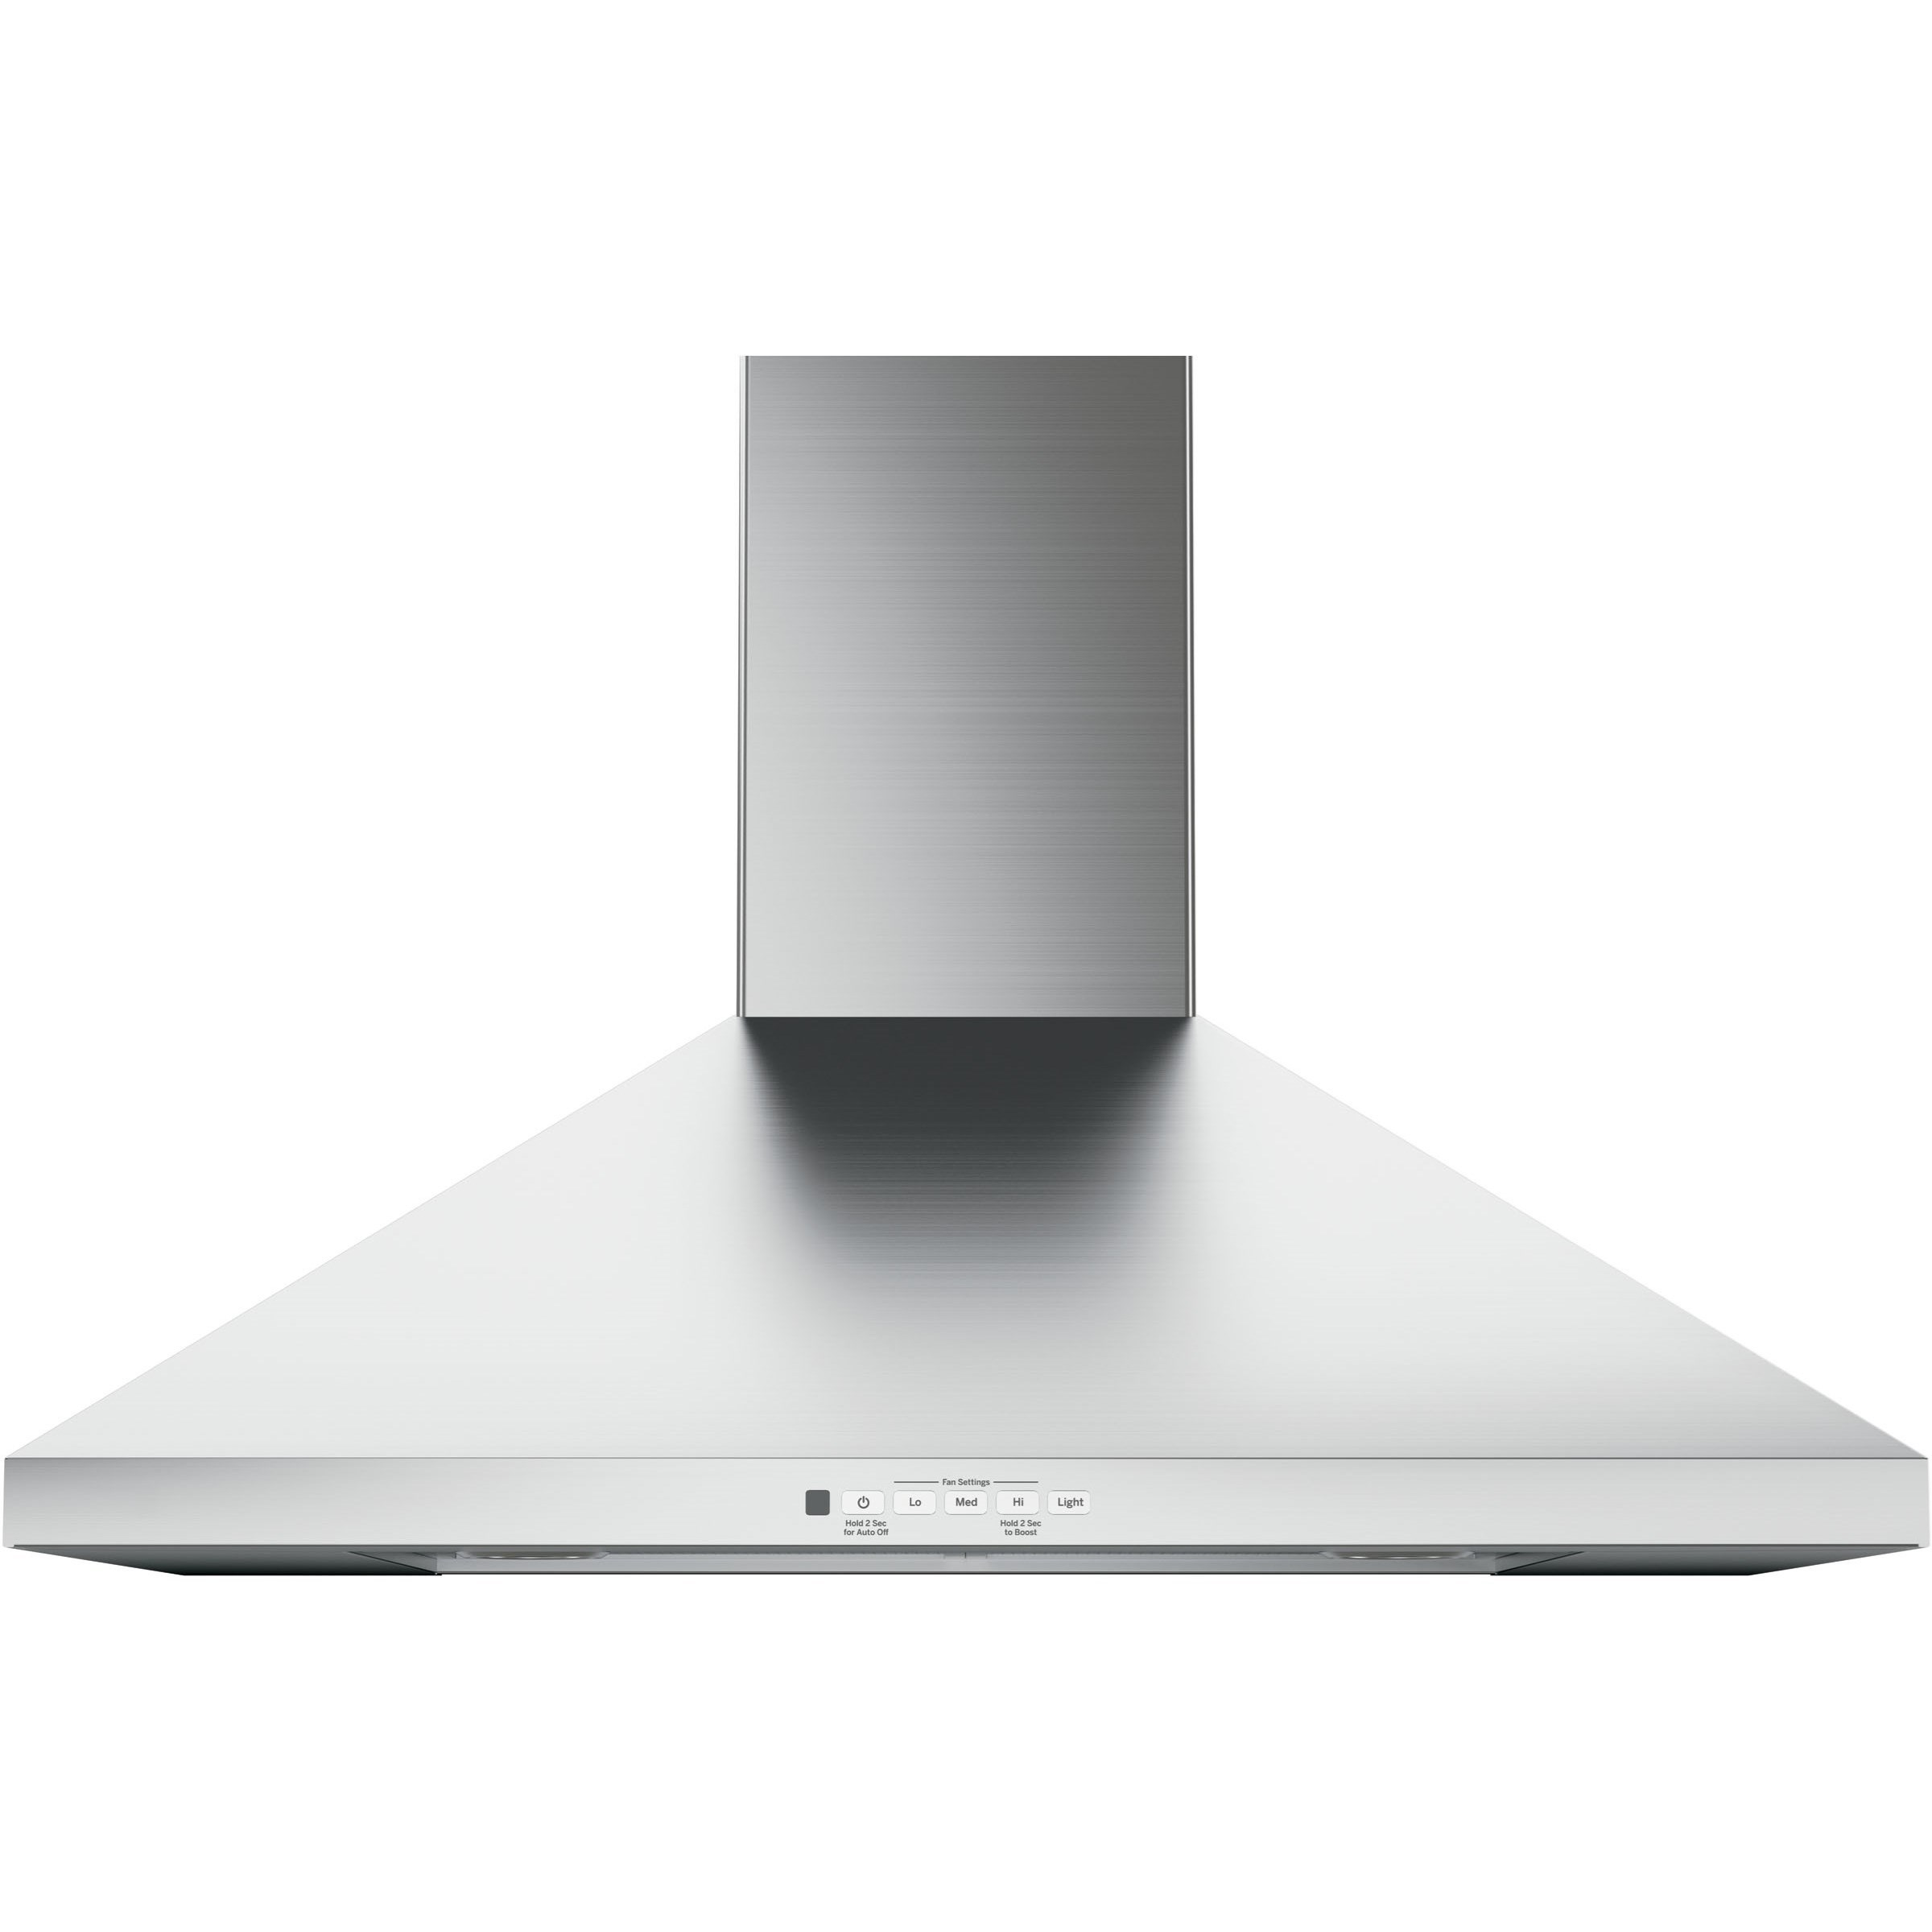 "Ventilation Hoods 30"" Wall-Mount Pyramid Chimney Hood by GE Appliances at Westrich Furniture & Appliances"